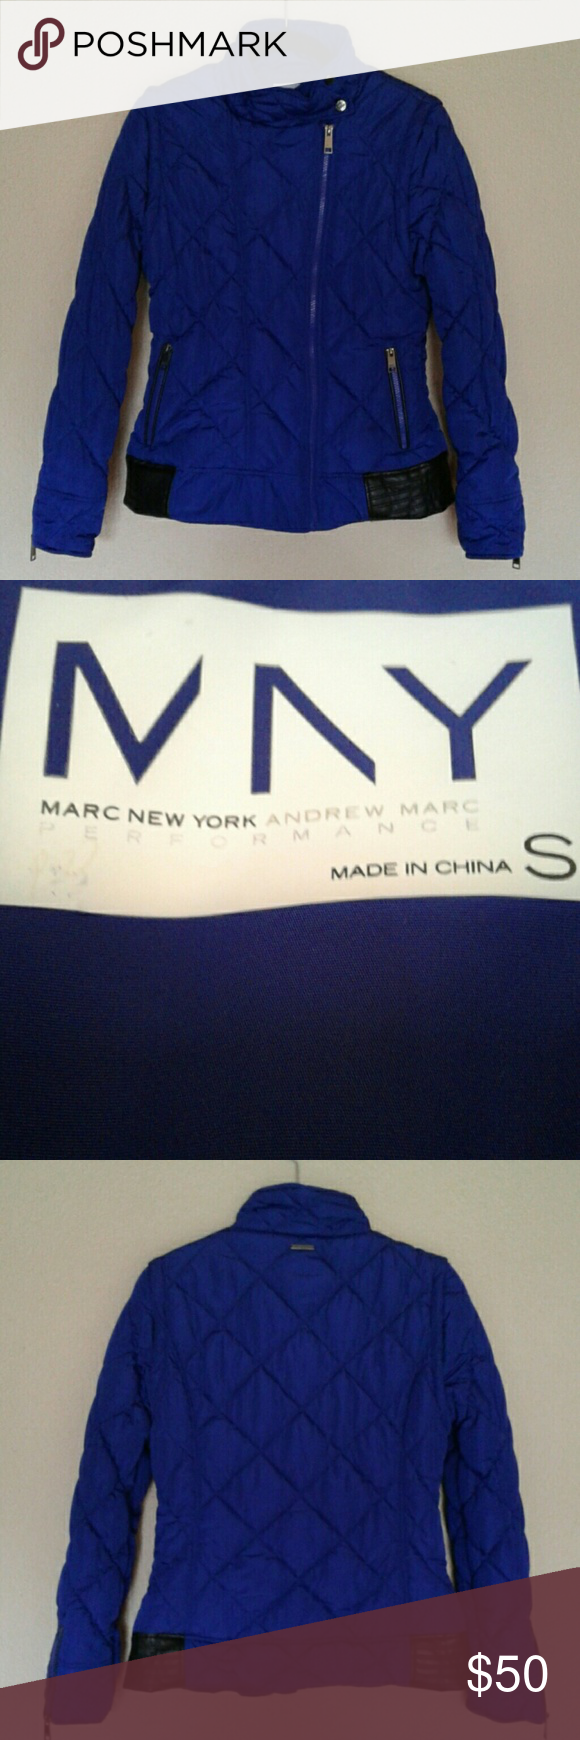 """MARC NEW YORK ANDREW MARC, VEST/JACKET MARC NEW YORK ANDREW MARC, VEST/JACKET.  Sleeves can be Removed to Make it a Vest.  2  5-1/2"""" Zippers at the Cuffs.   100% Polyester.  Great Jacket!! Excellent Condition MARC NEW YORK ANDREW MARC Jackets & Coats"""